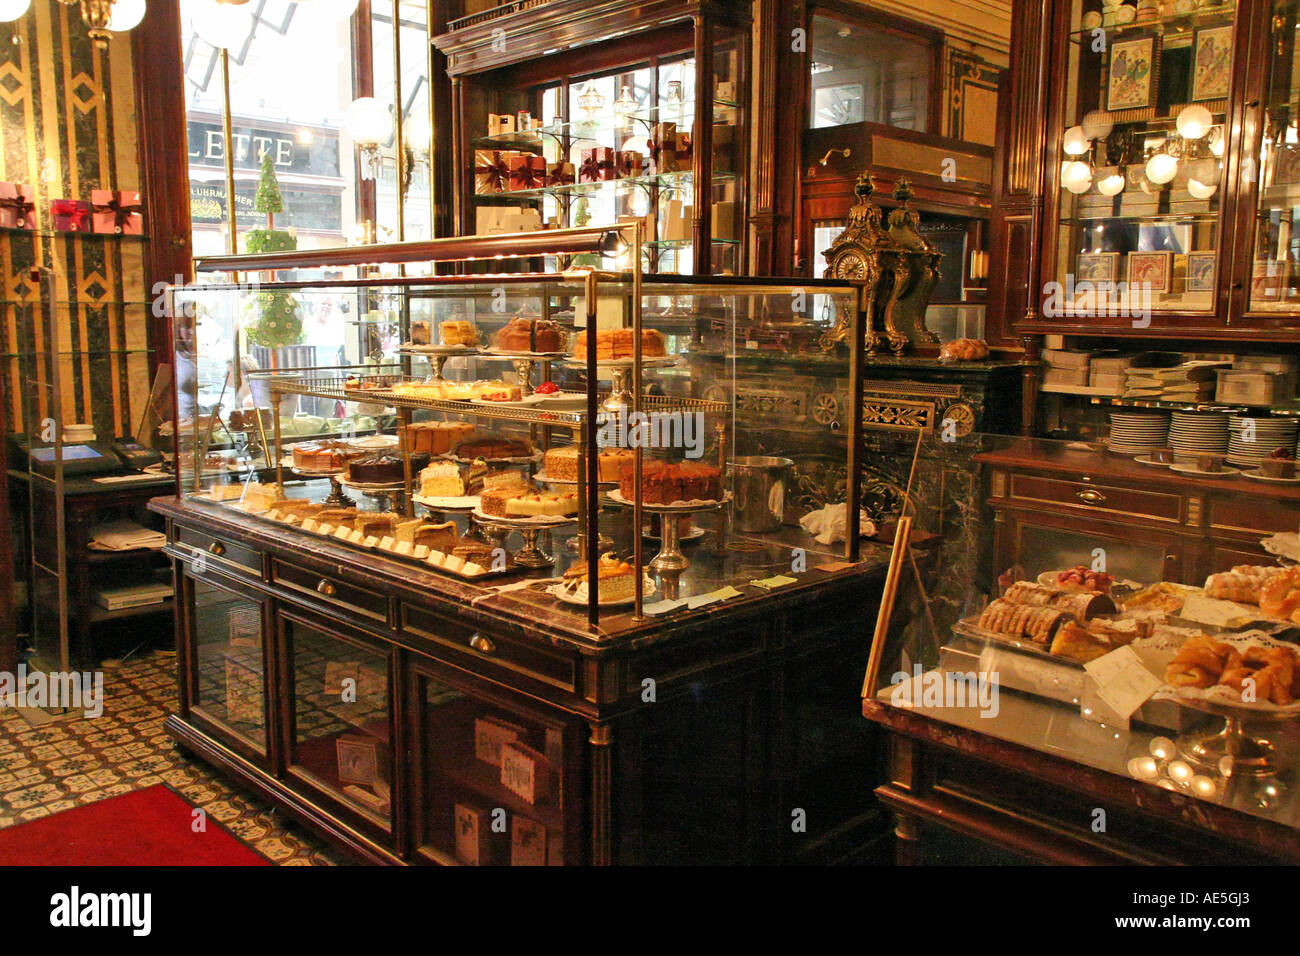 Cafe Demel Kohlmarkt Interior Austria Vienna Stock Photo